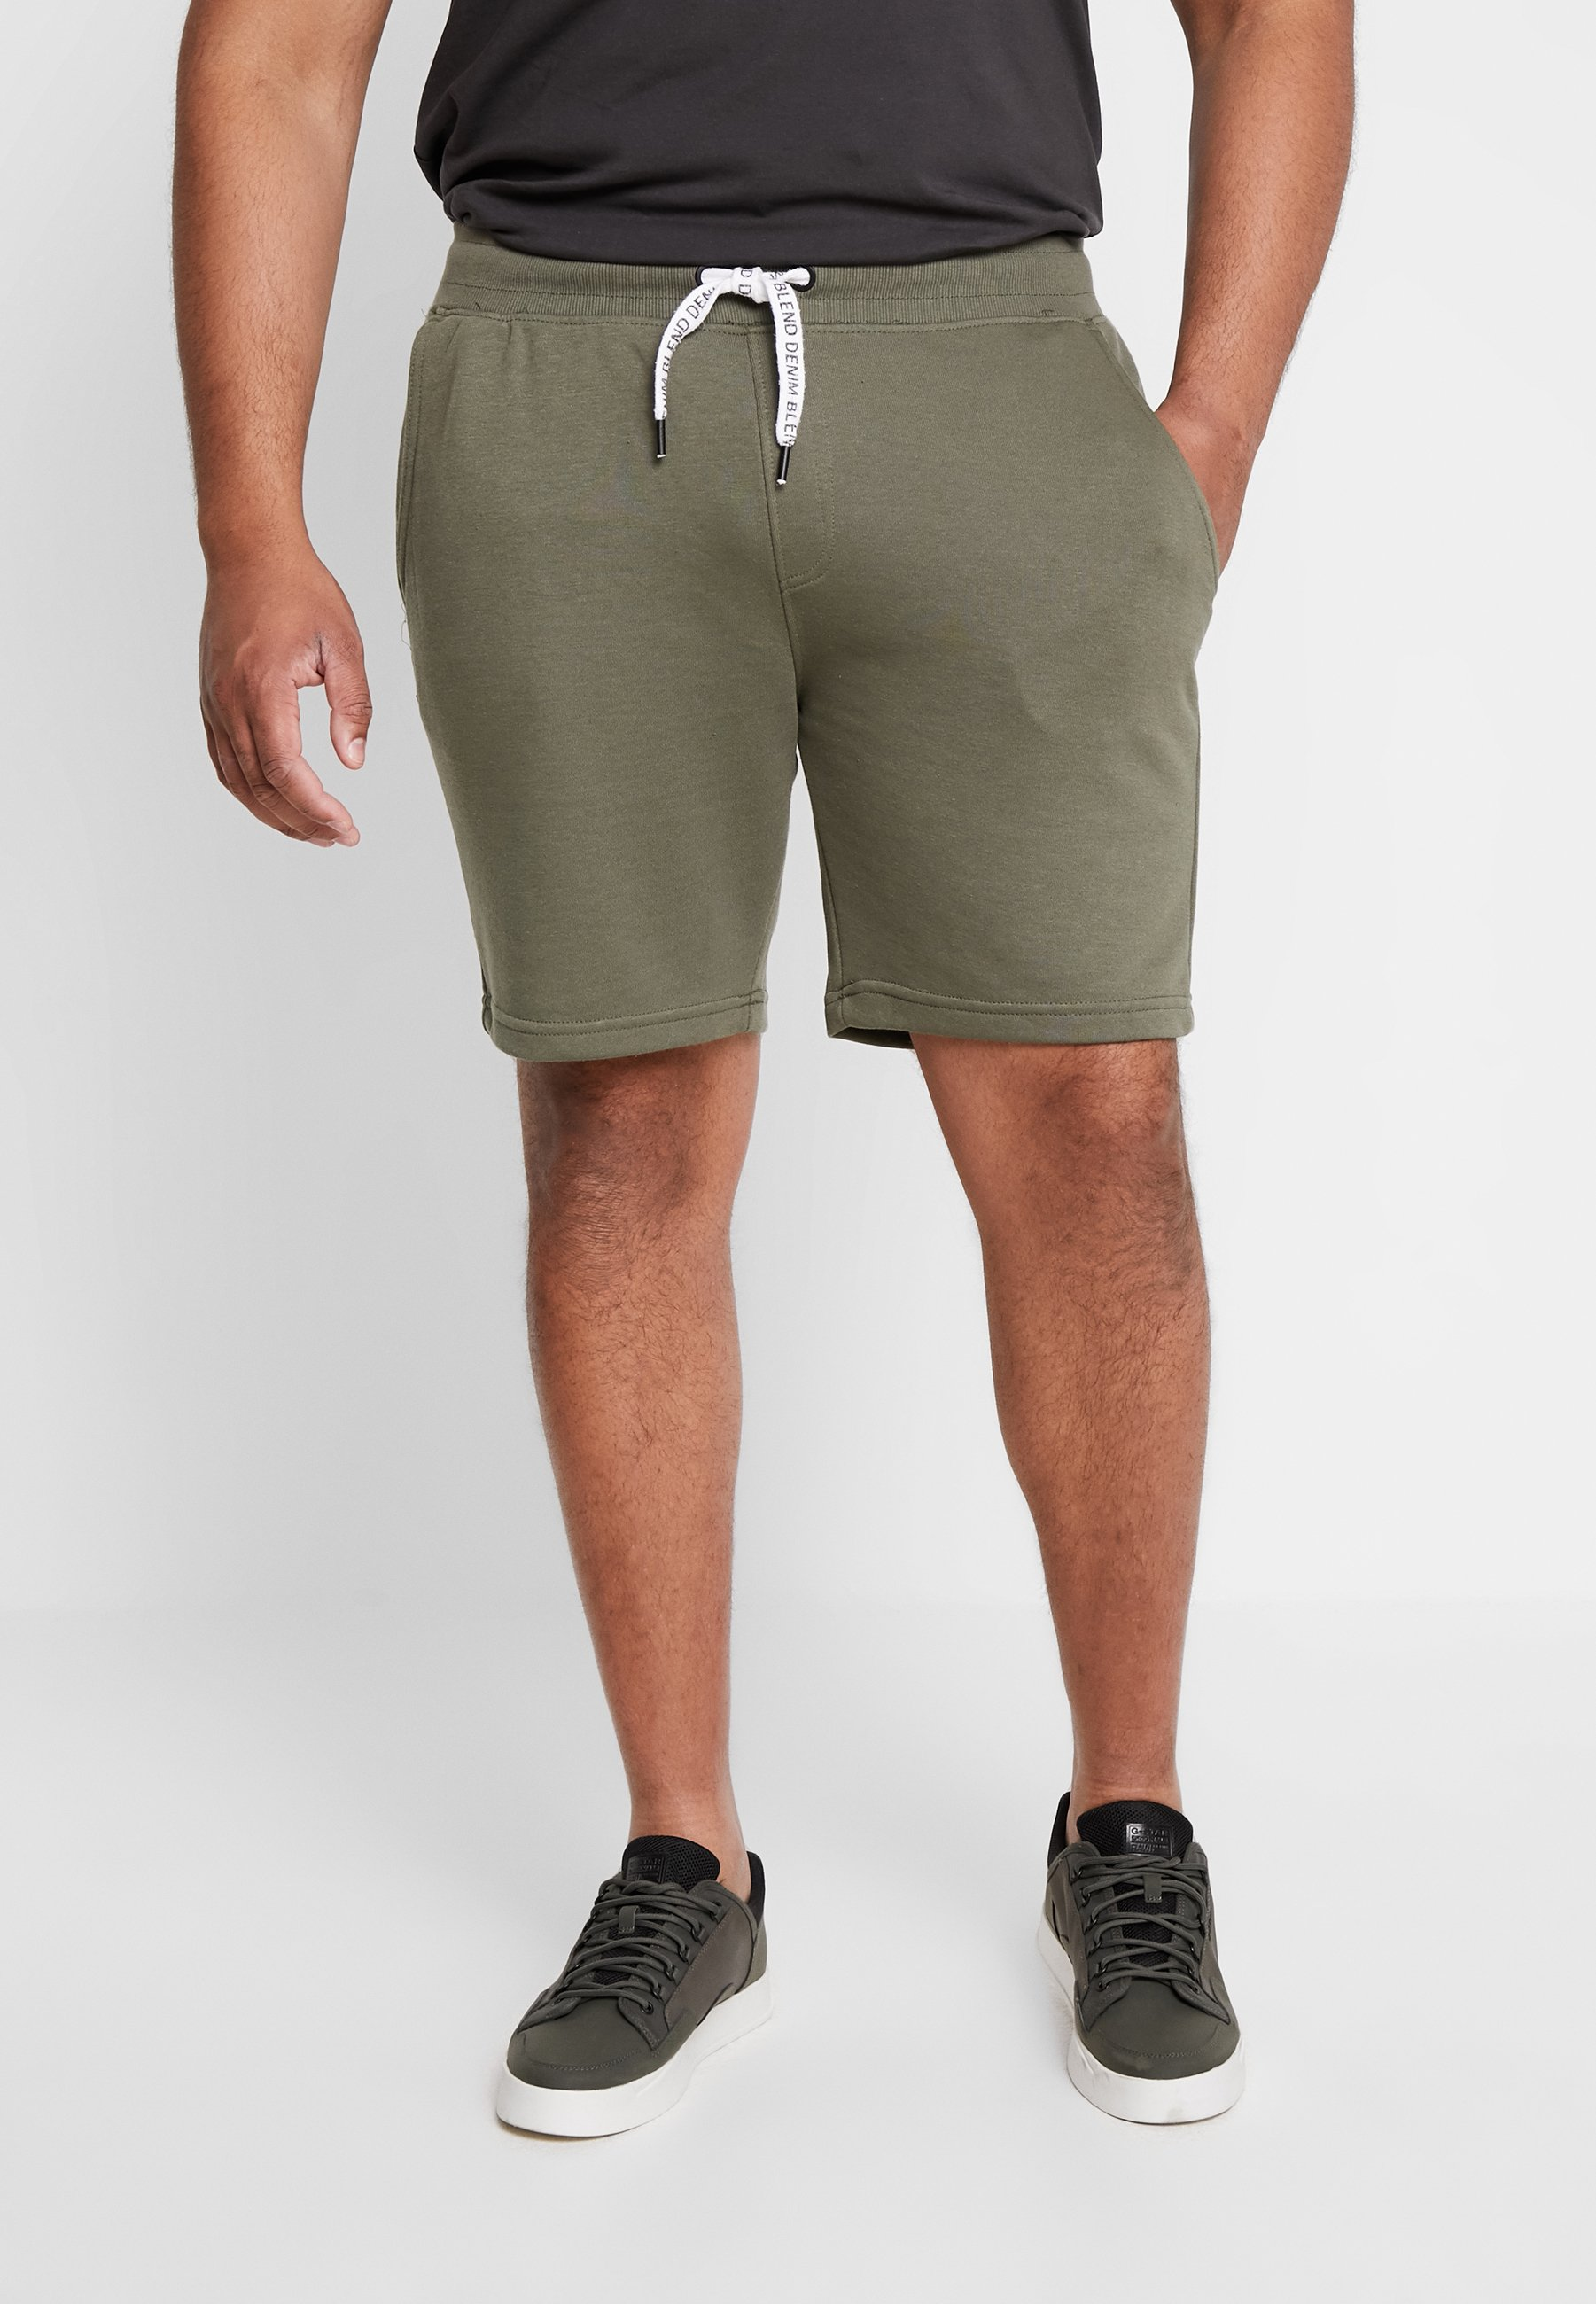 ShortDusty Blend Olive ShortDusty Green Blend Green Blend Olive Olive ShortDusty YyIb6g7vf